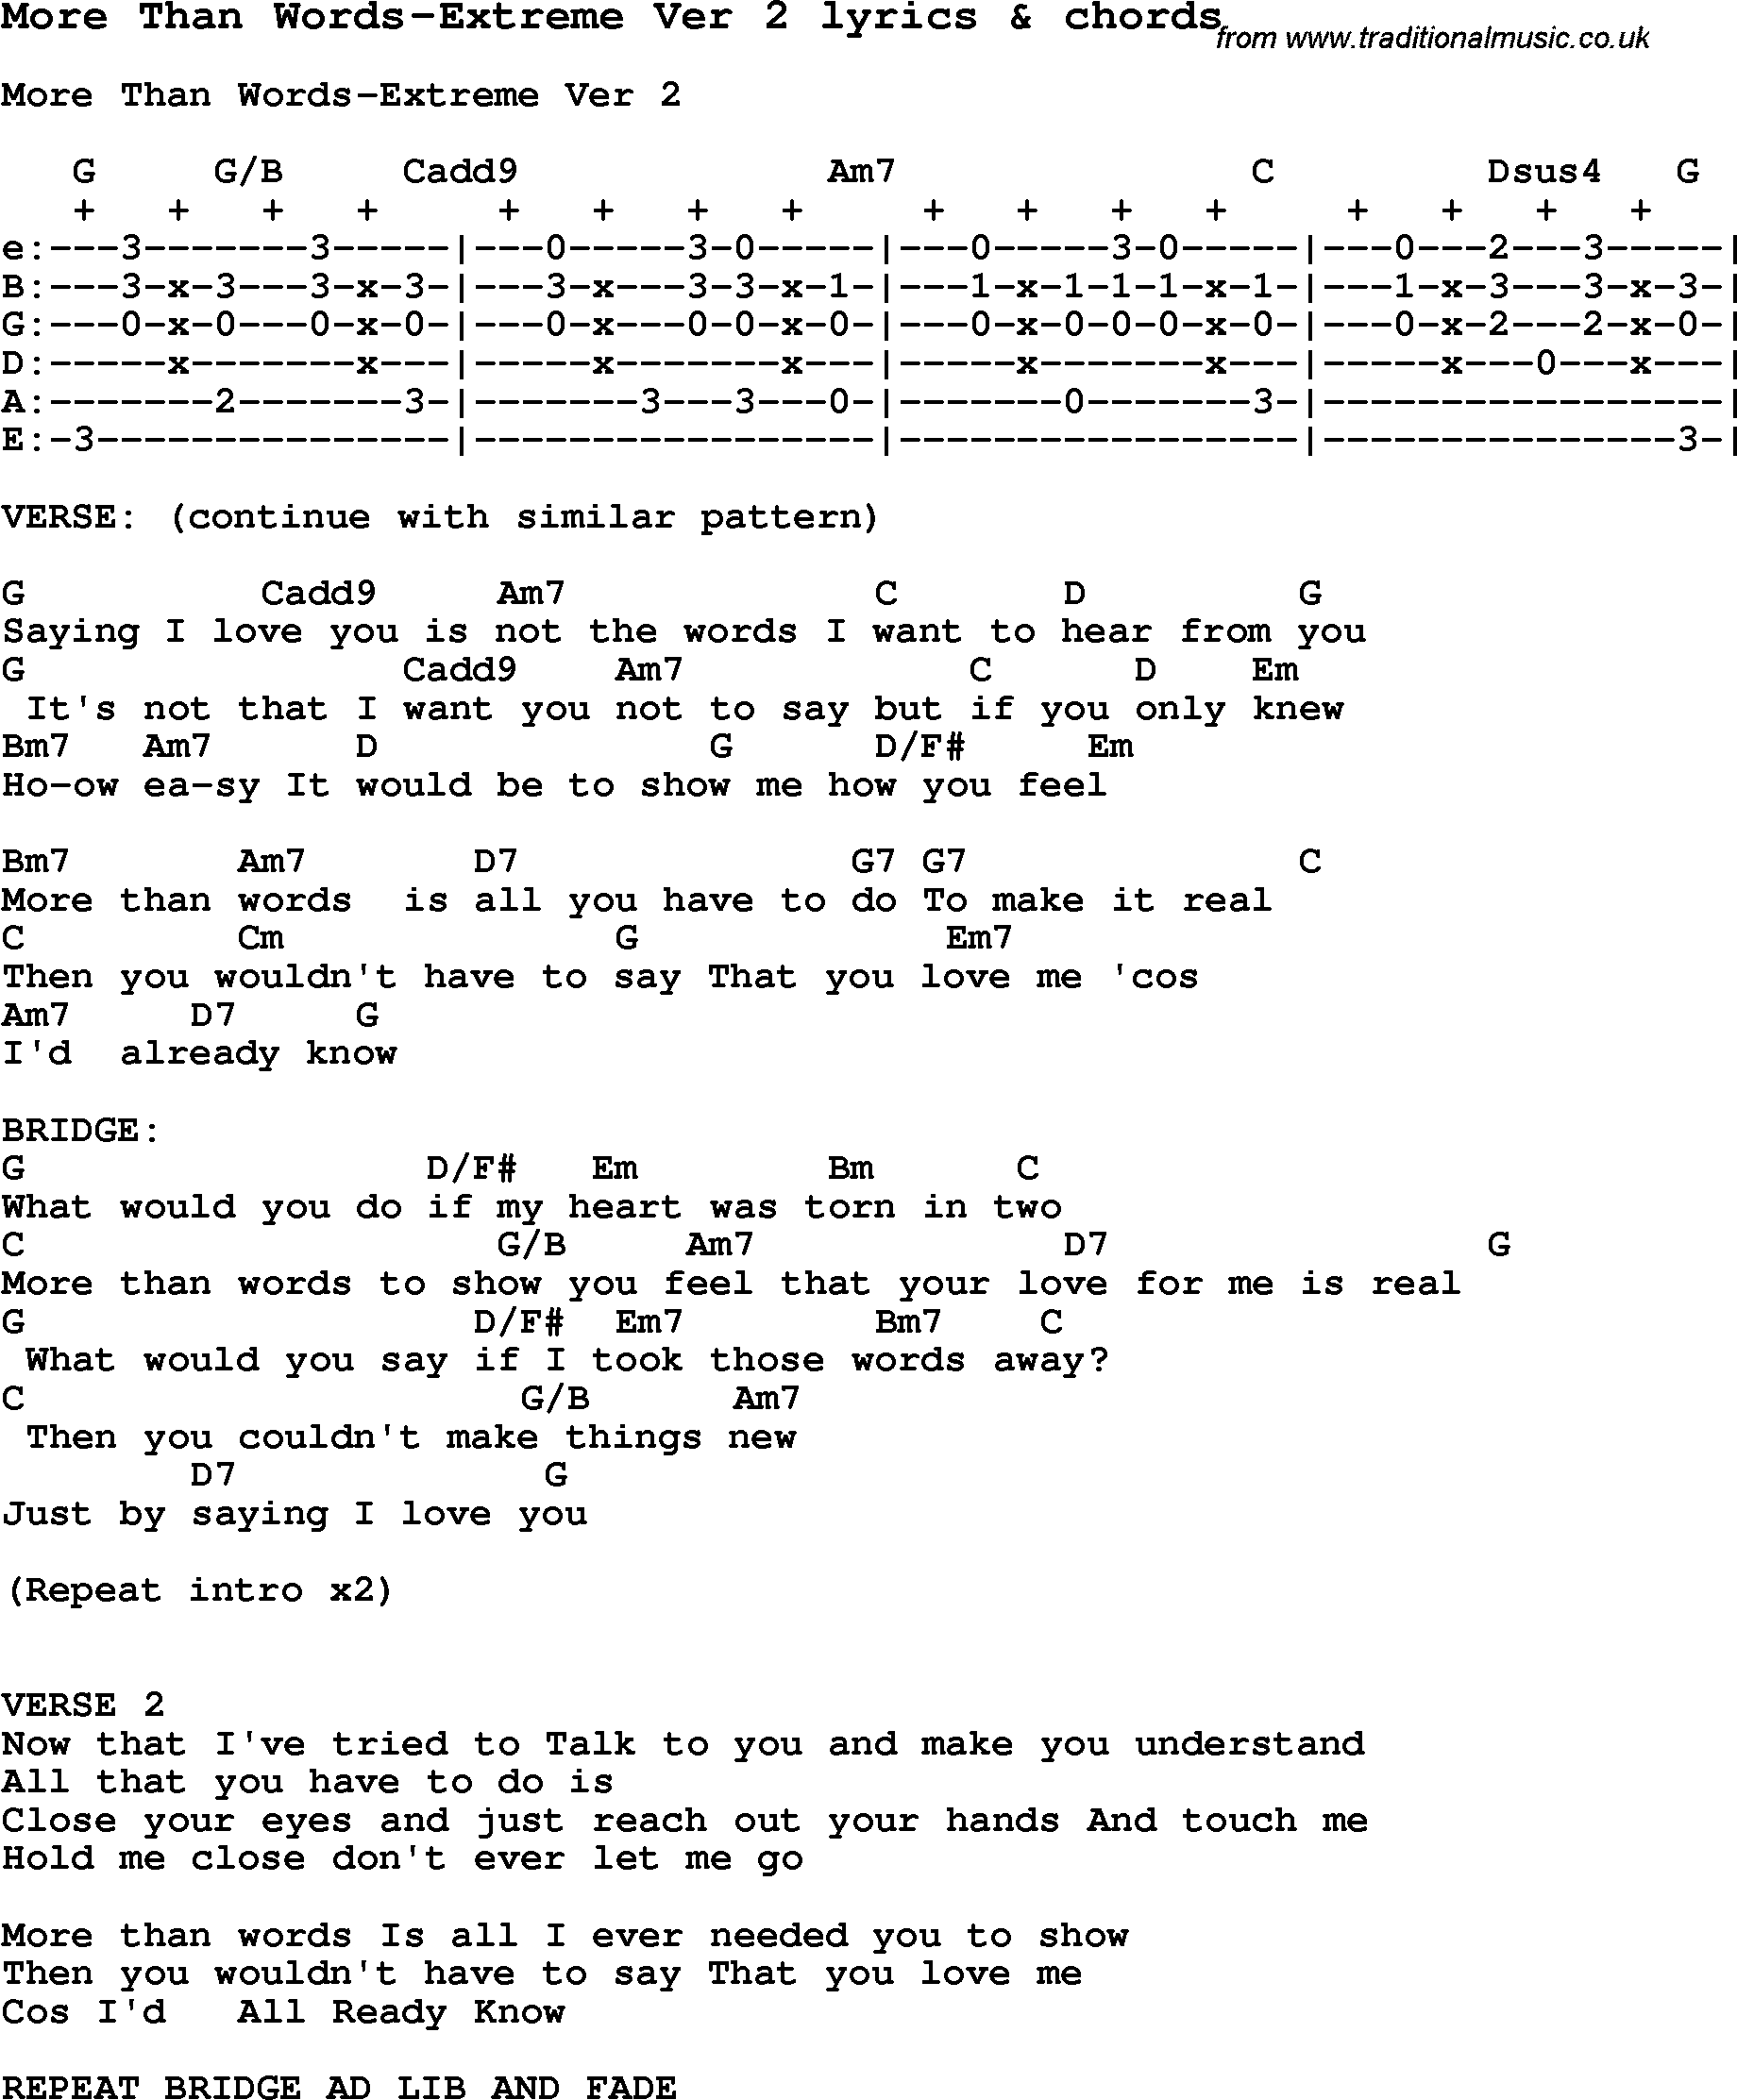 Love song lyrics for more than words extreme ver 2 with chords love song lyrics for more than words extreme ver 2 with chords for ukulele hexwebz Image collections